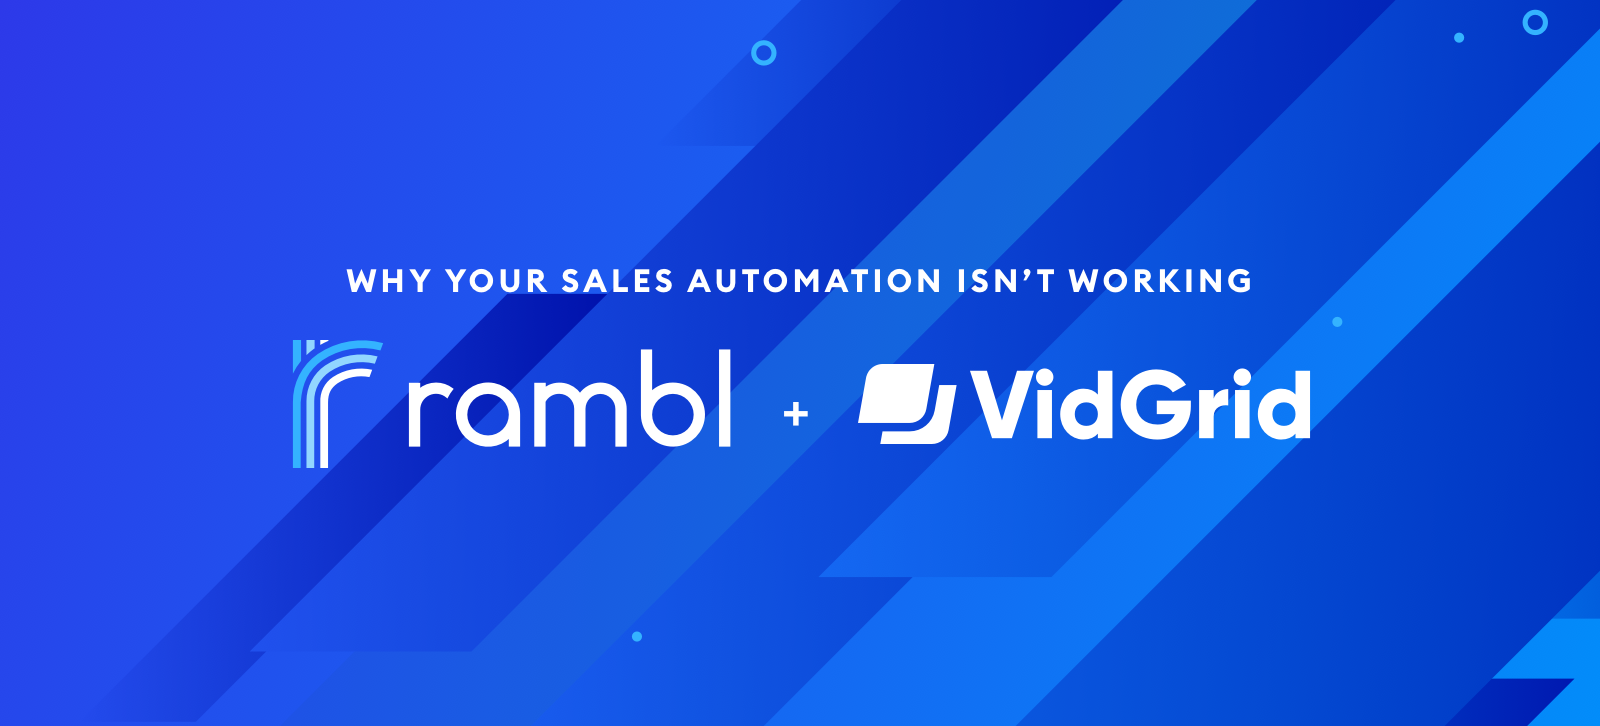 Why Your Sales Automation Isn't Working